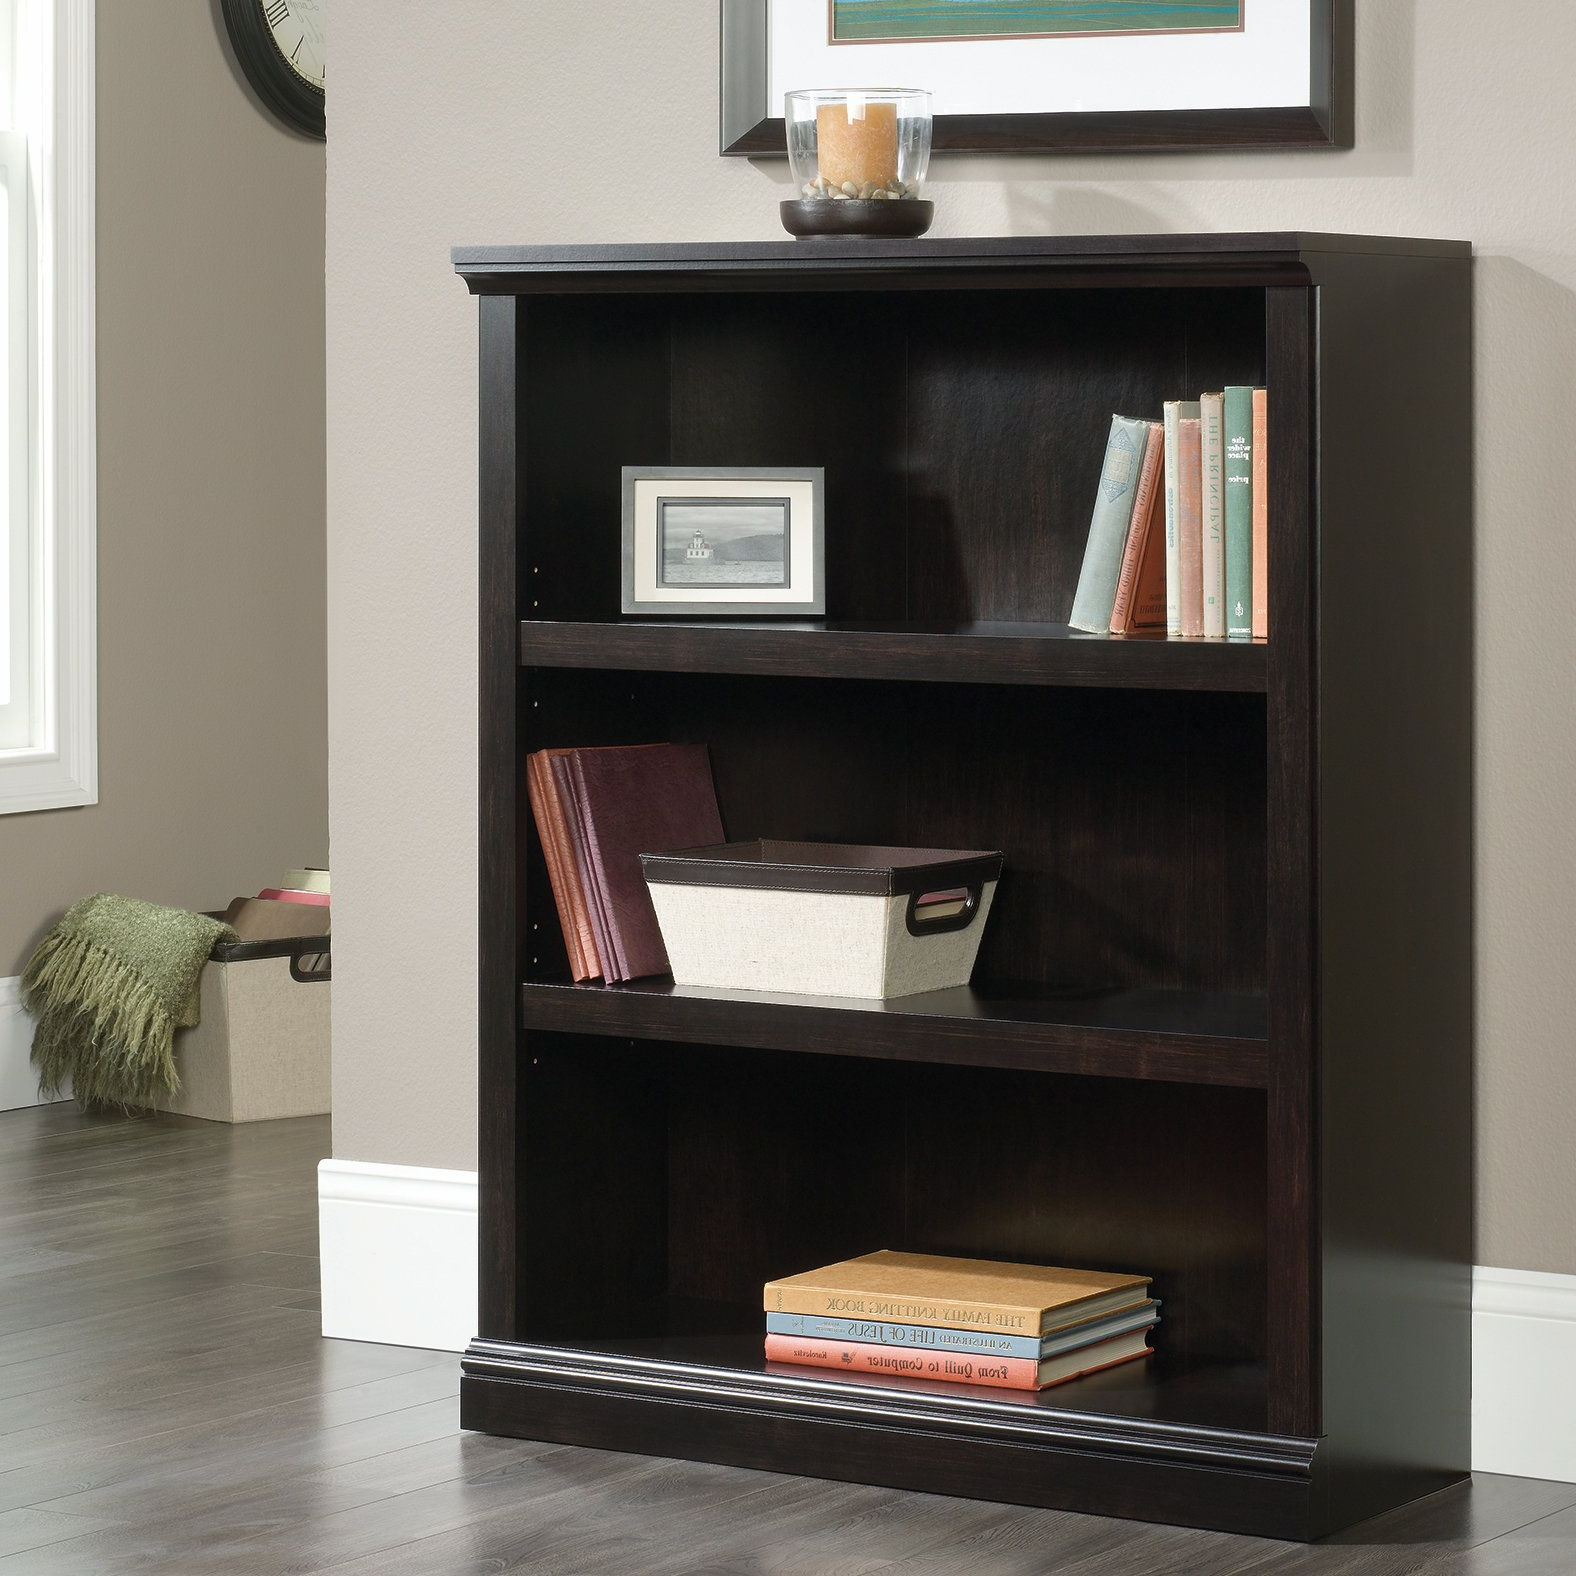 Hartman Standard Bookcase (View 9 of 20)